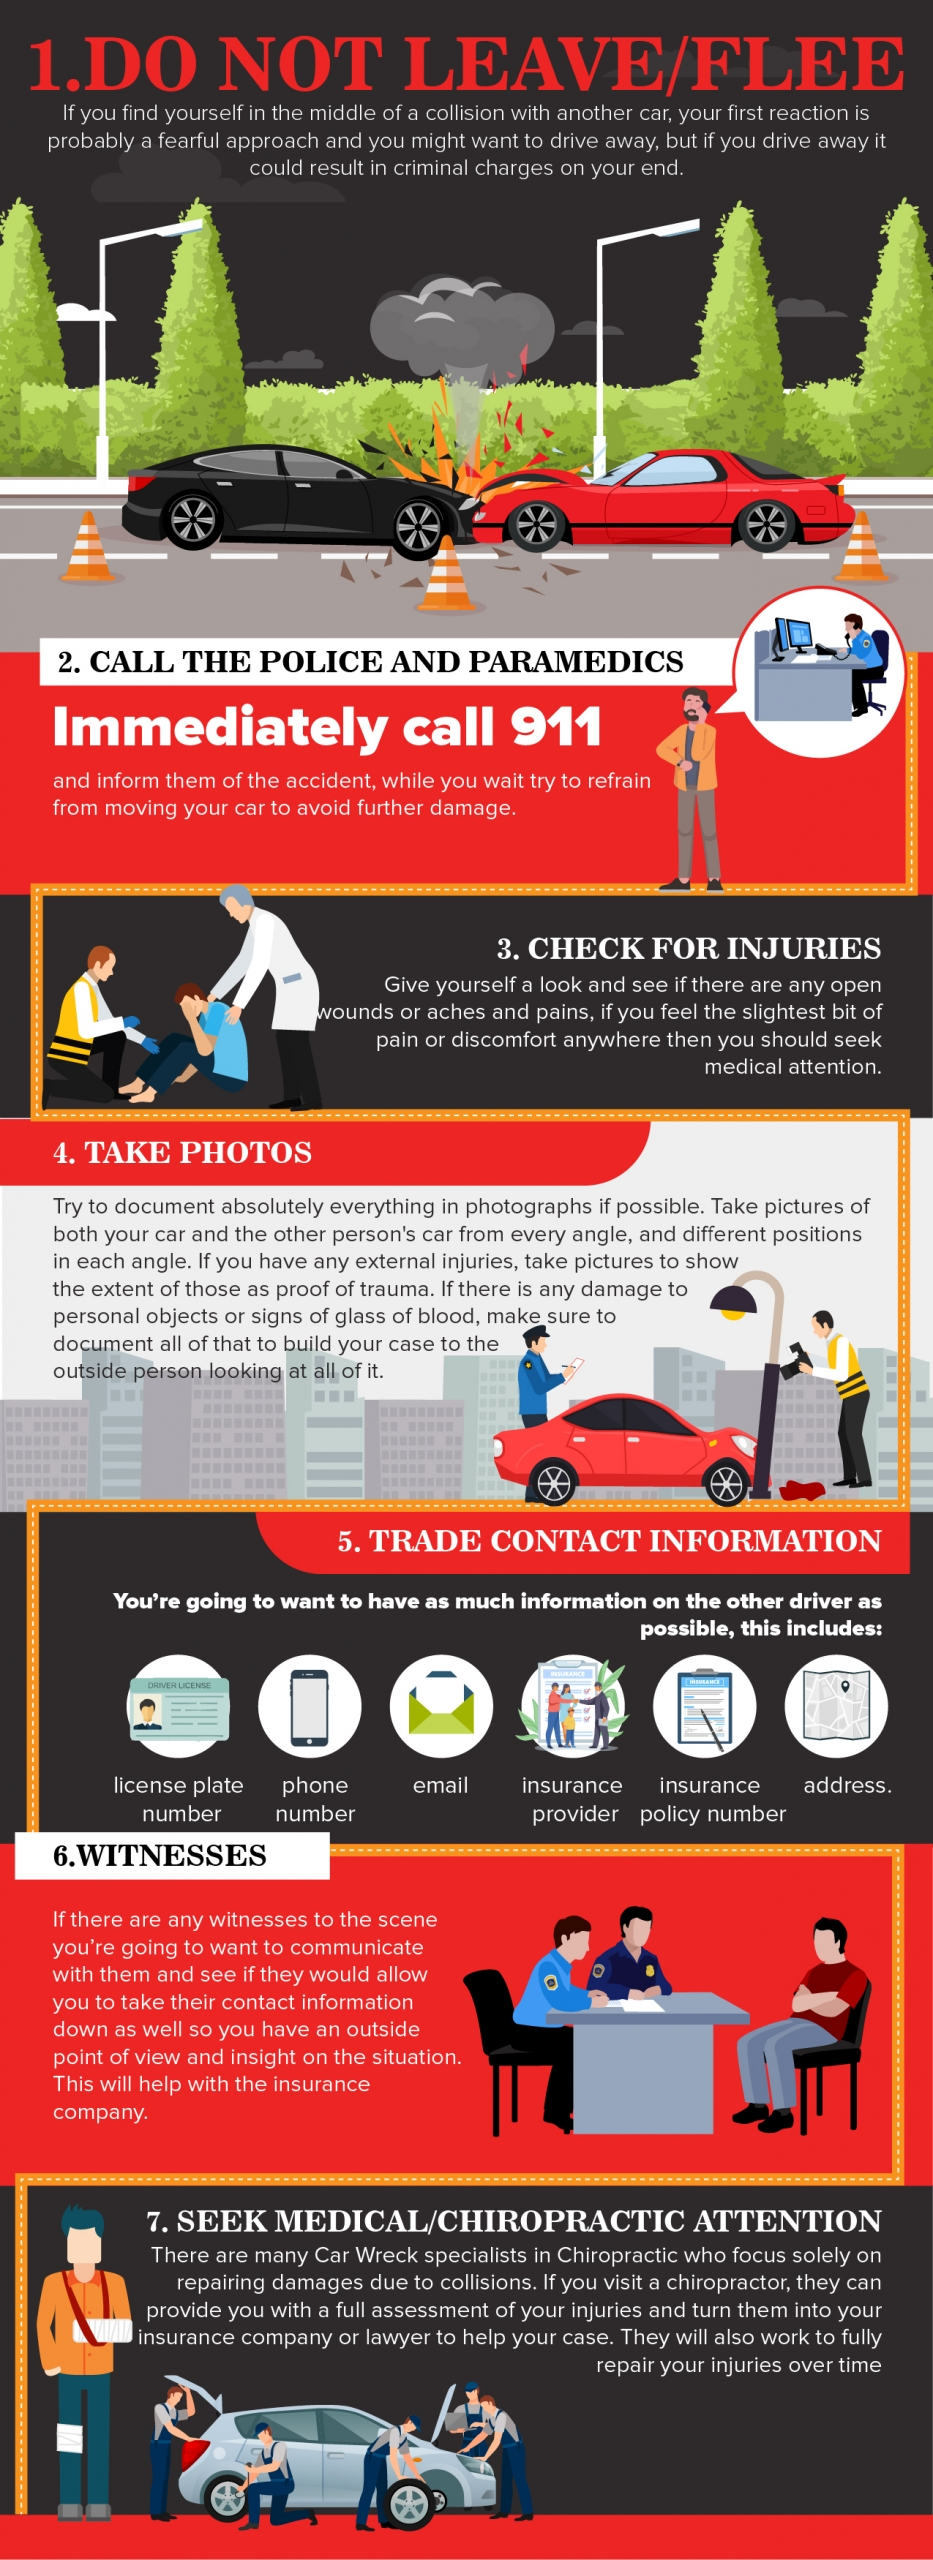 Infographic provides information for people who have been in a car accident in Florida